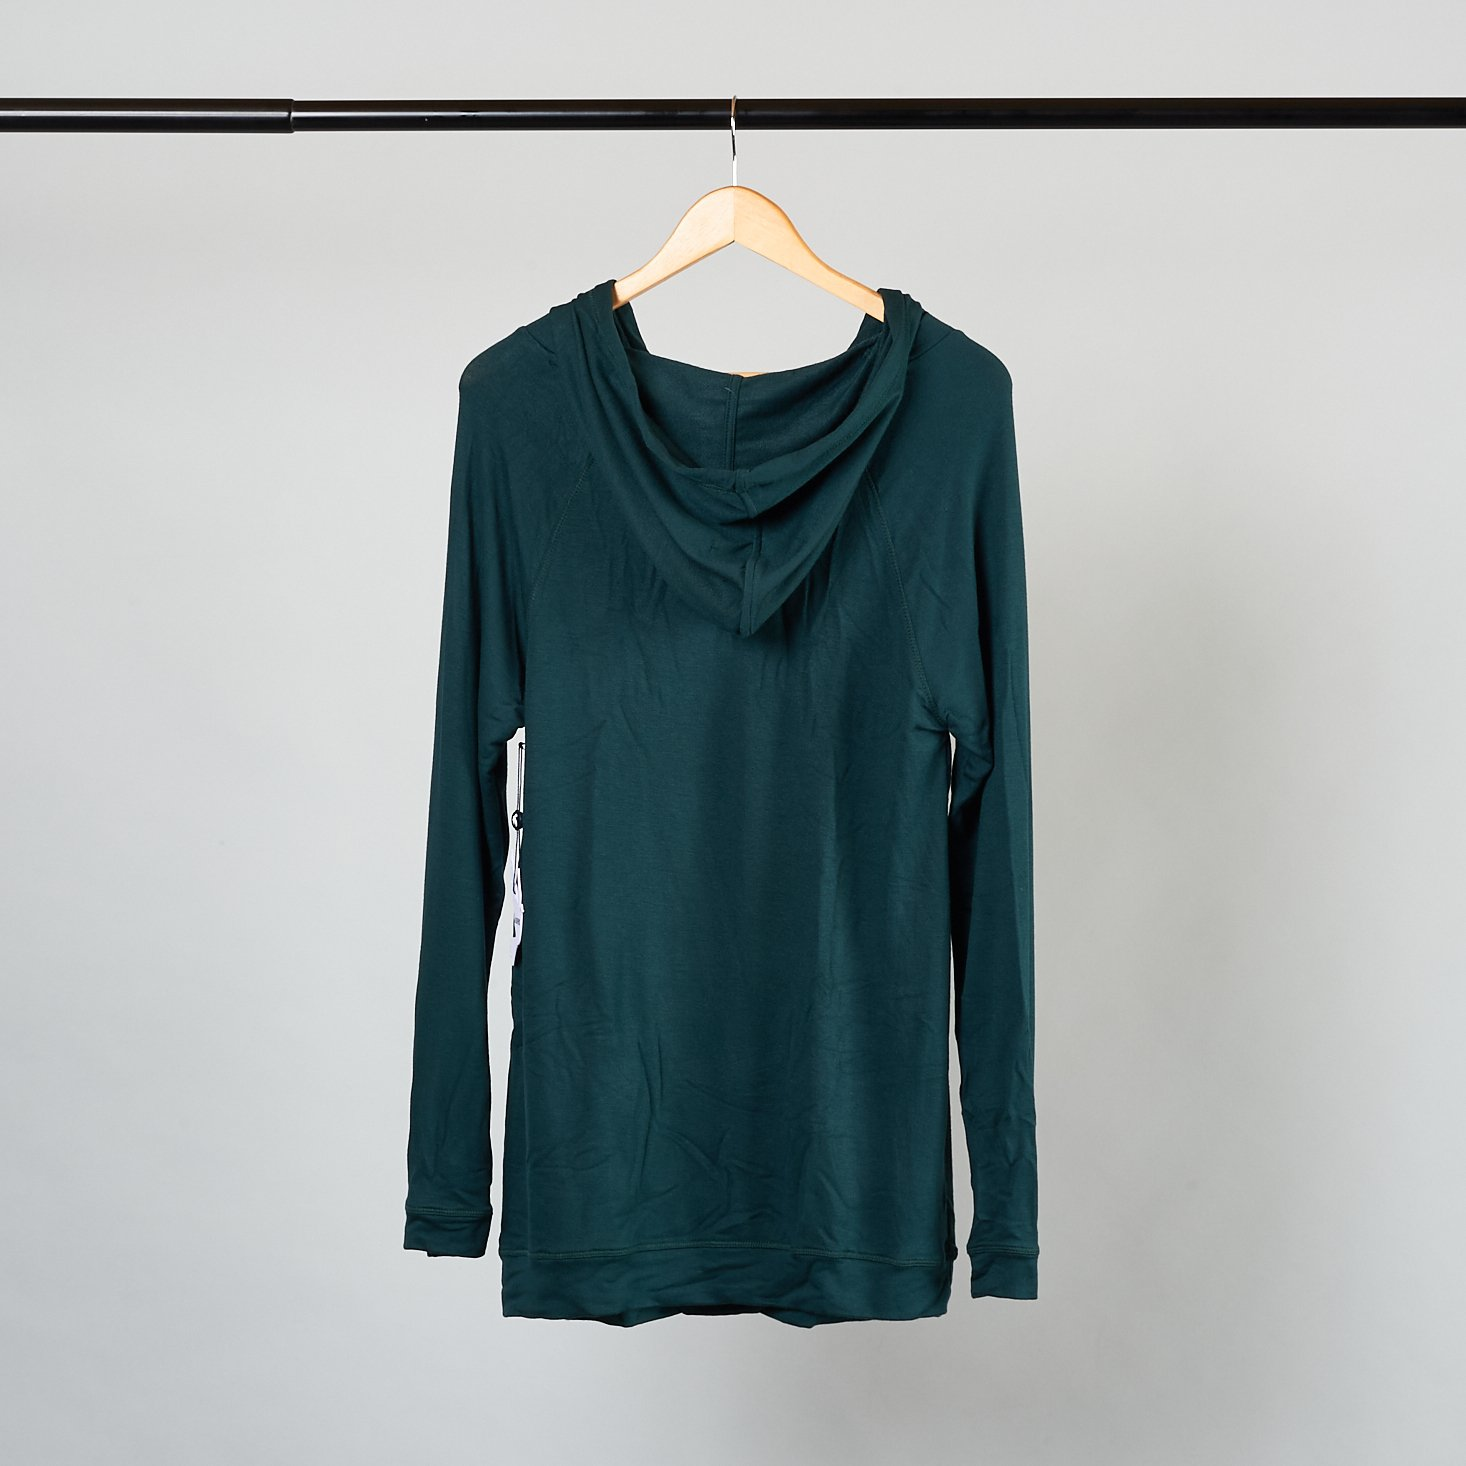 back of green hoodie from Stitch Fix Maternity